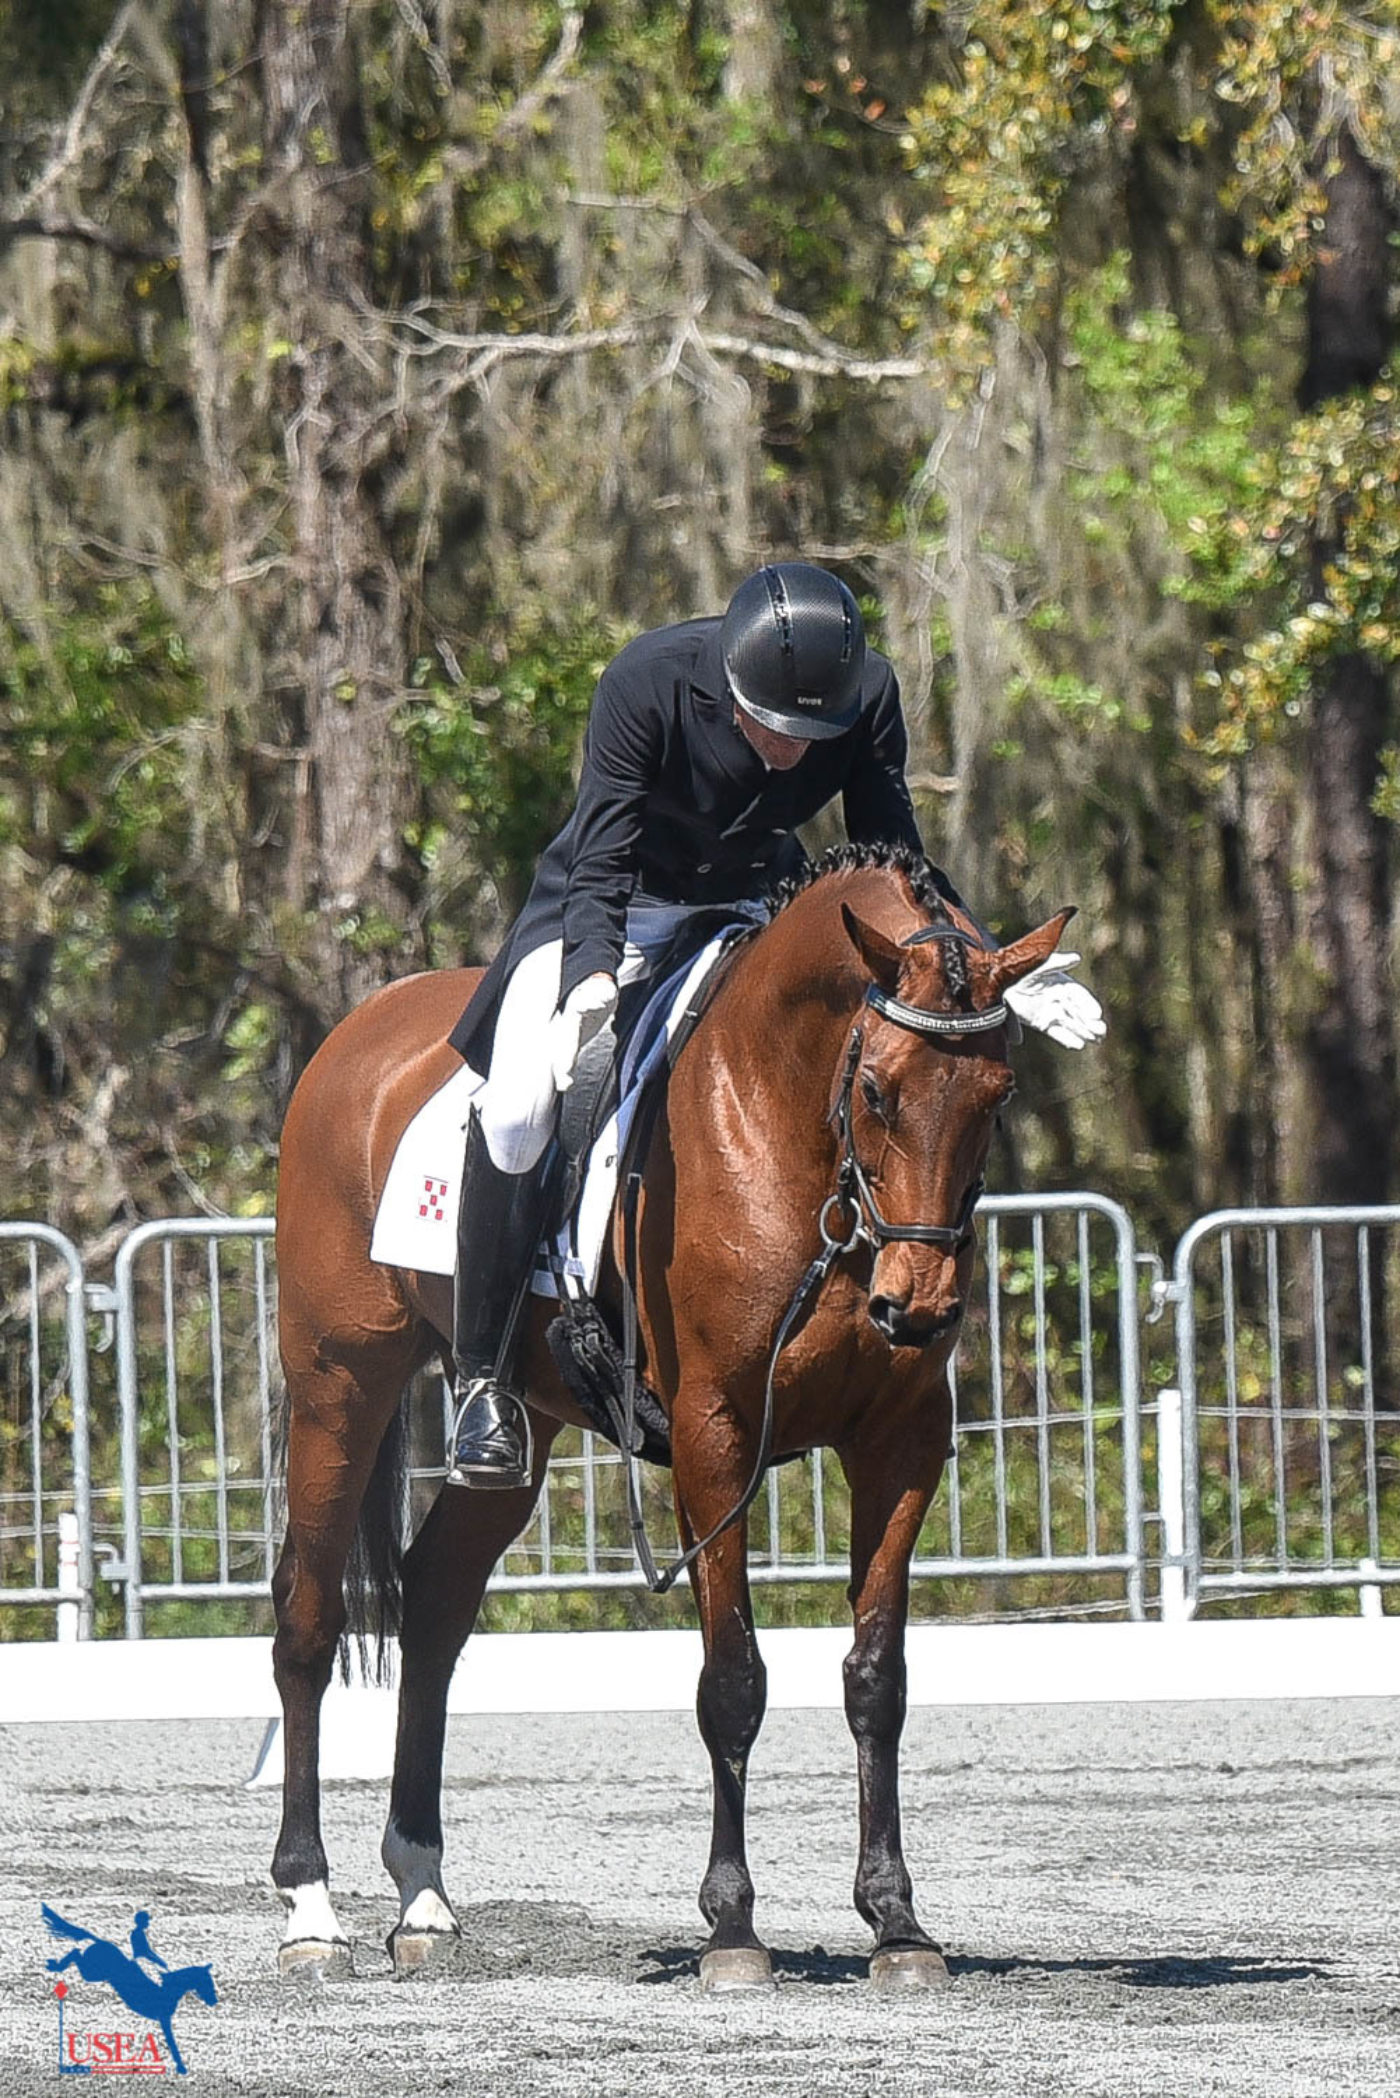 Kyle Carter was happy with a top 10 dressage finish with Reddy or Not. USEA/Kate Lokey photo.